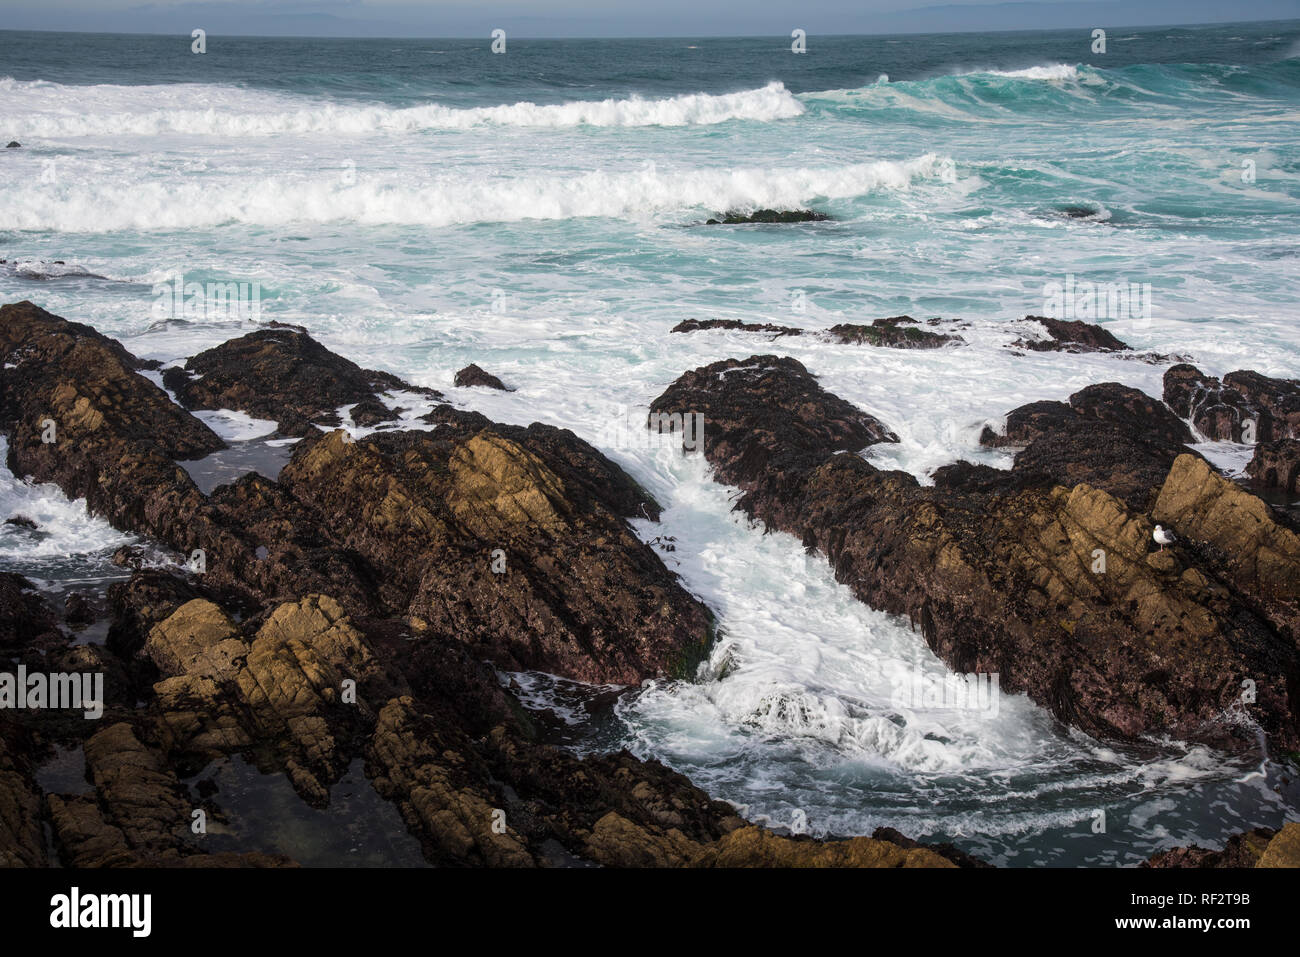 Rocky shore line, waves and beach scene on the Monterrey Peninsula.  The variation and variety of beautiful seascapes are endless. Stock Photo